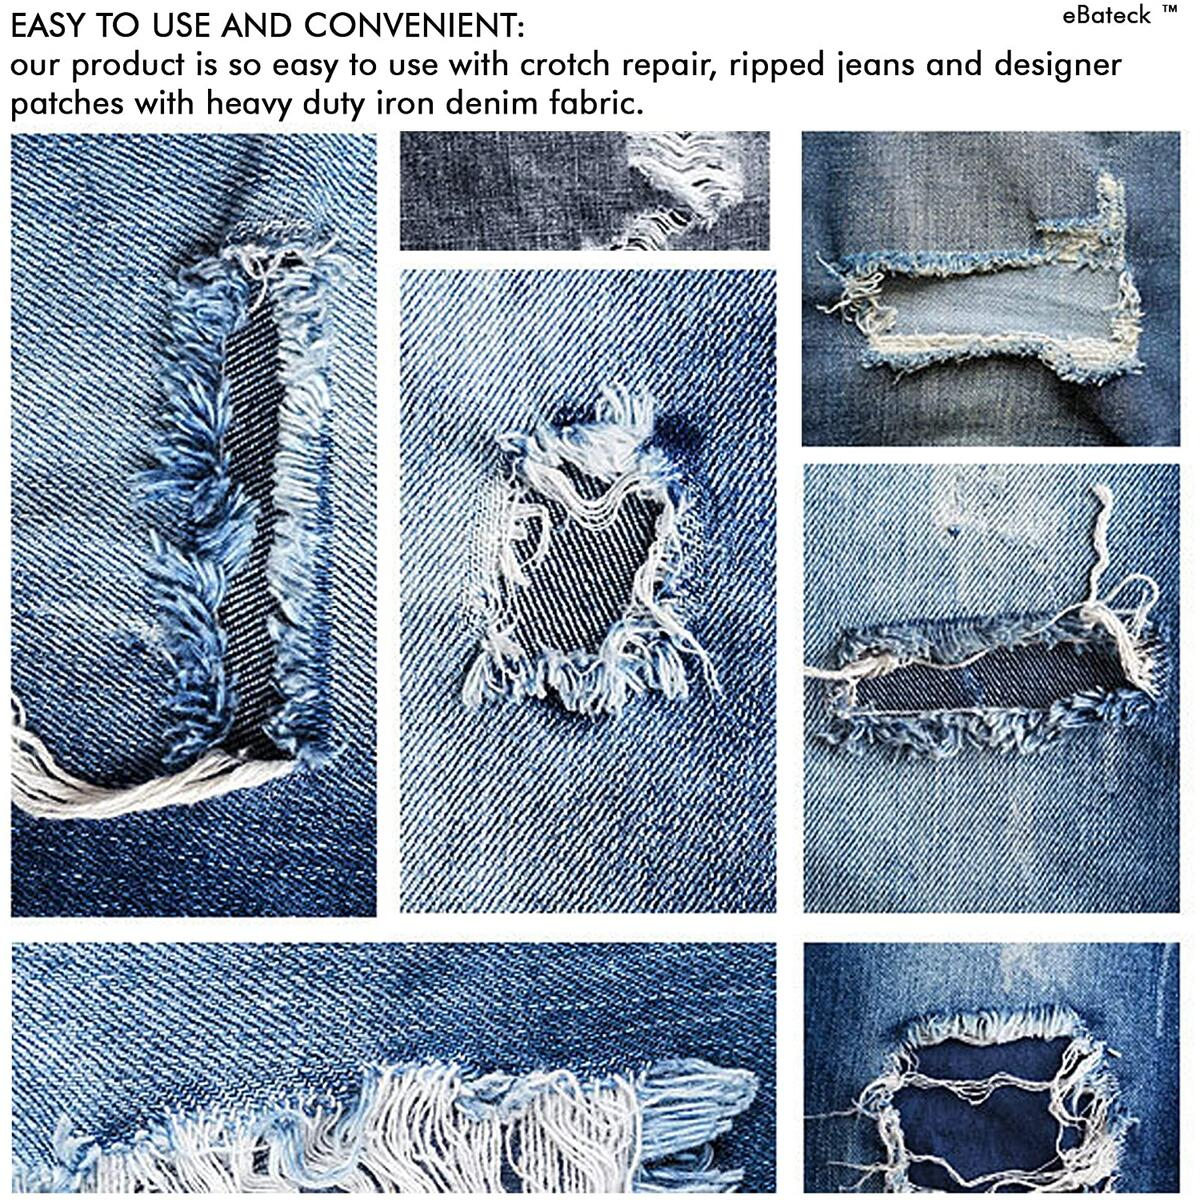 24Pcs Iron On Patches for Clothing Repair - 6 Colors Blue